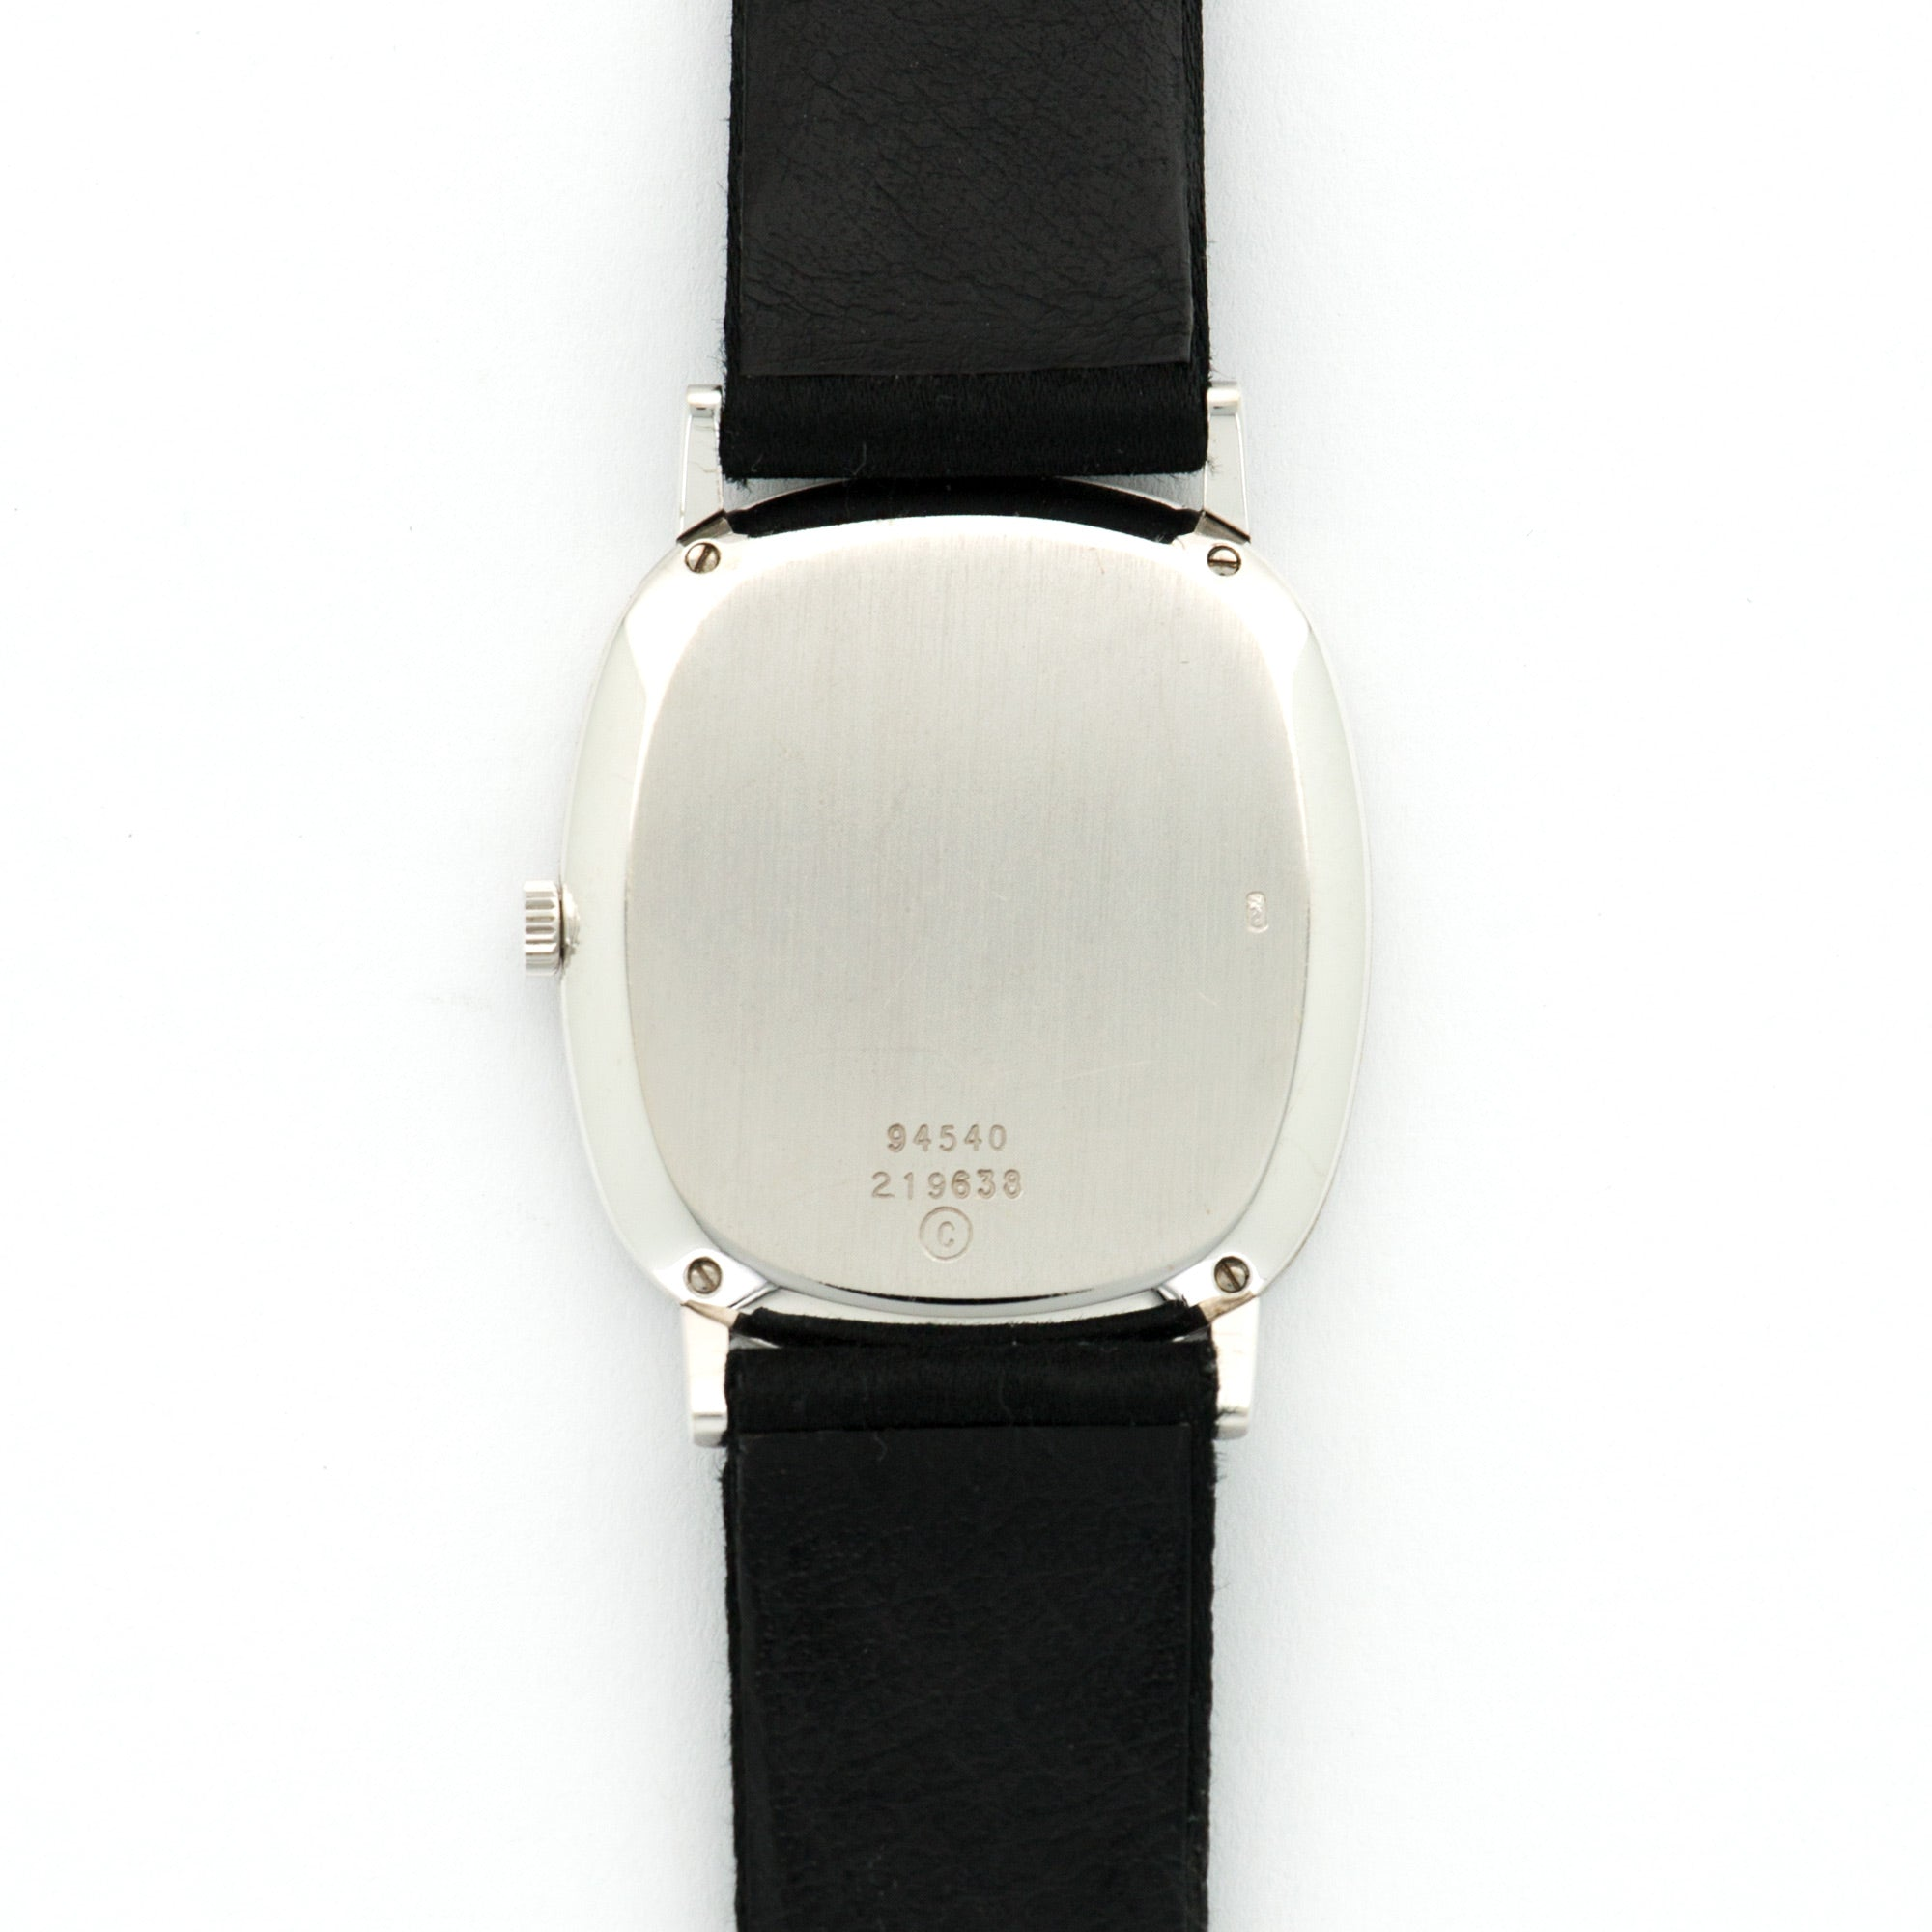 Piaget Vintage 94540 18k WG  Excellent Ladies 18k WG Black 26mm X 30mm Manual 1970s Black Satin N/A